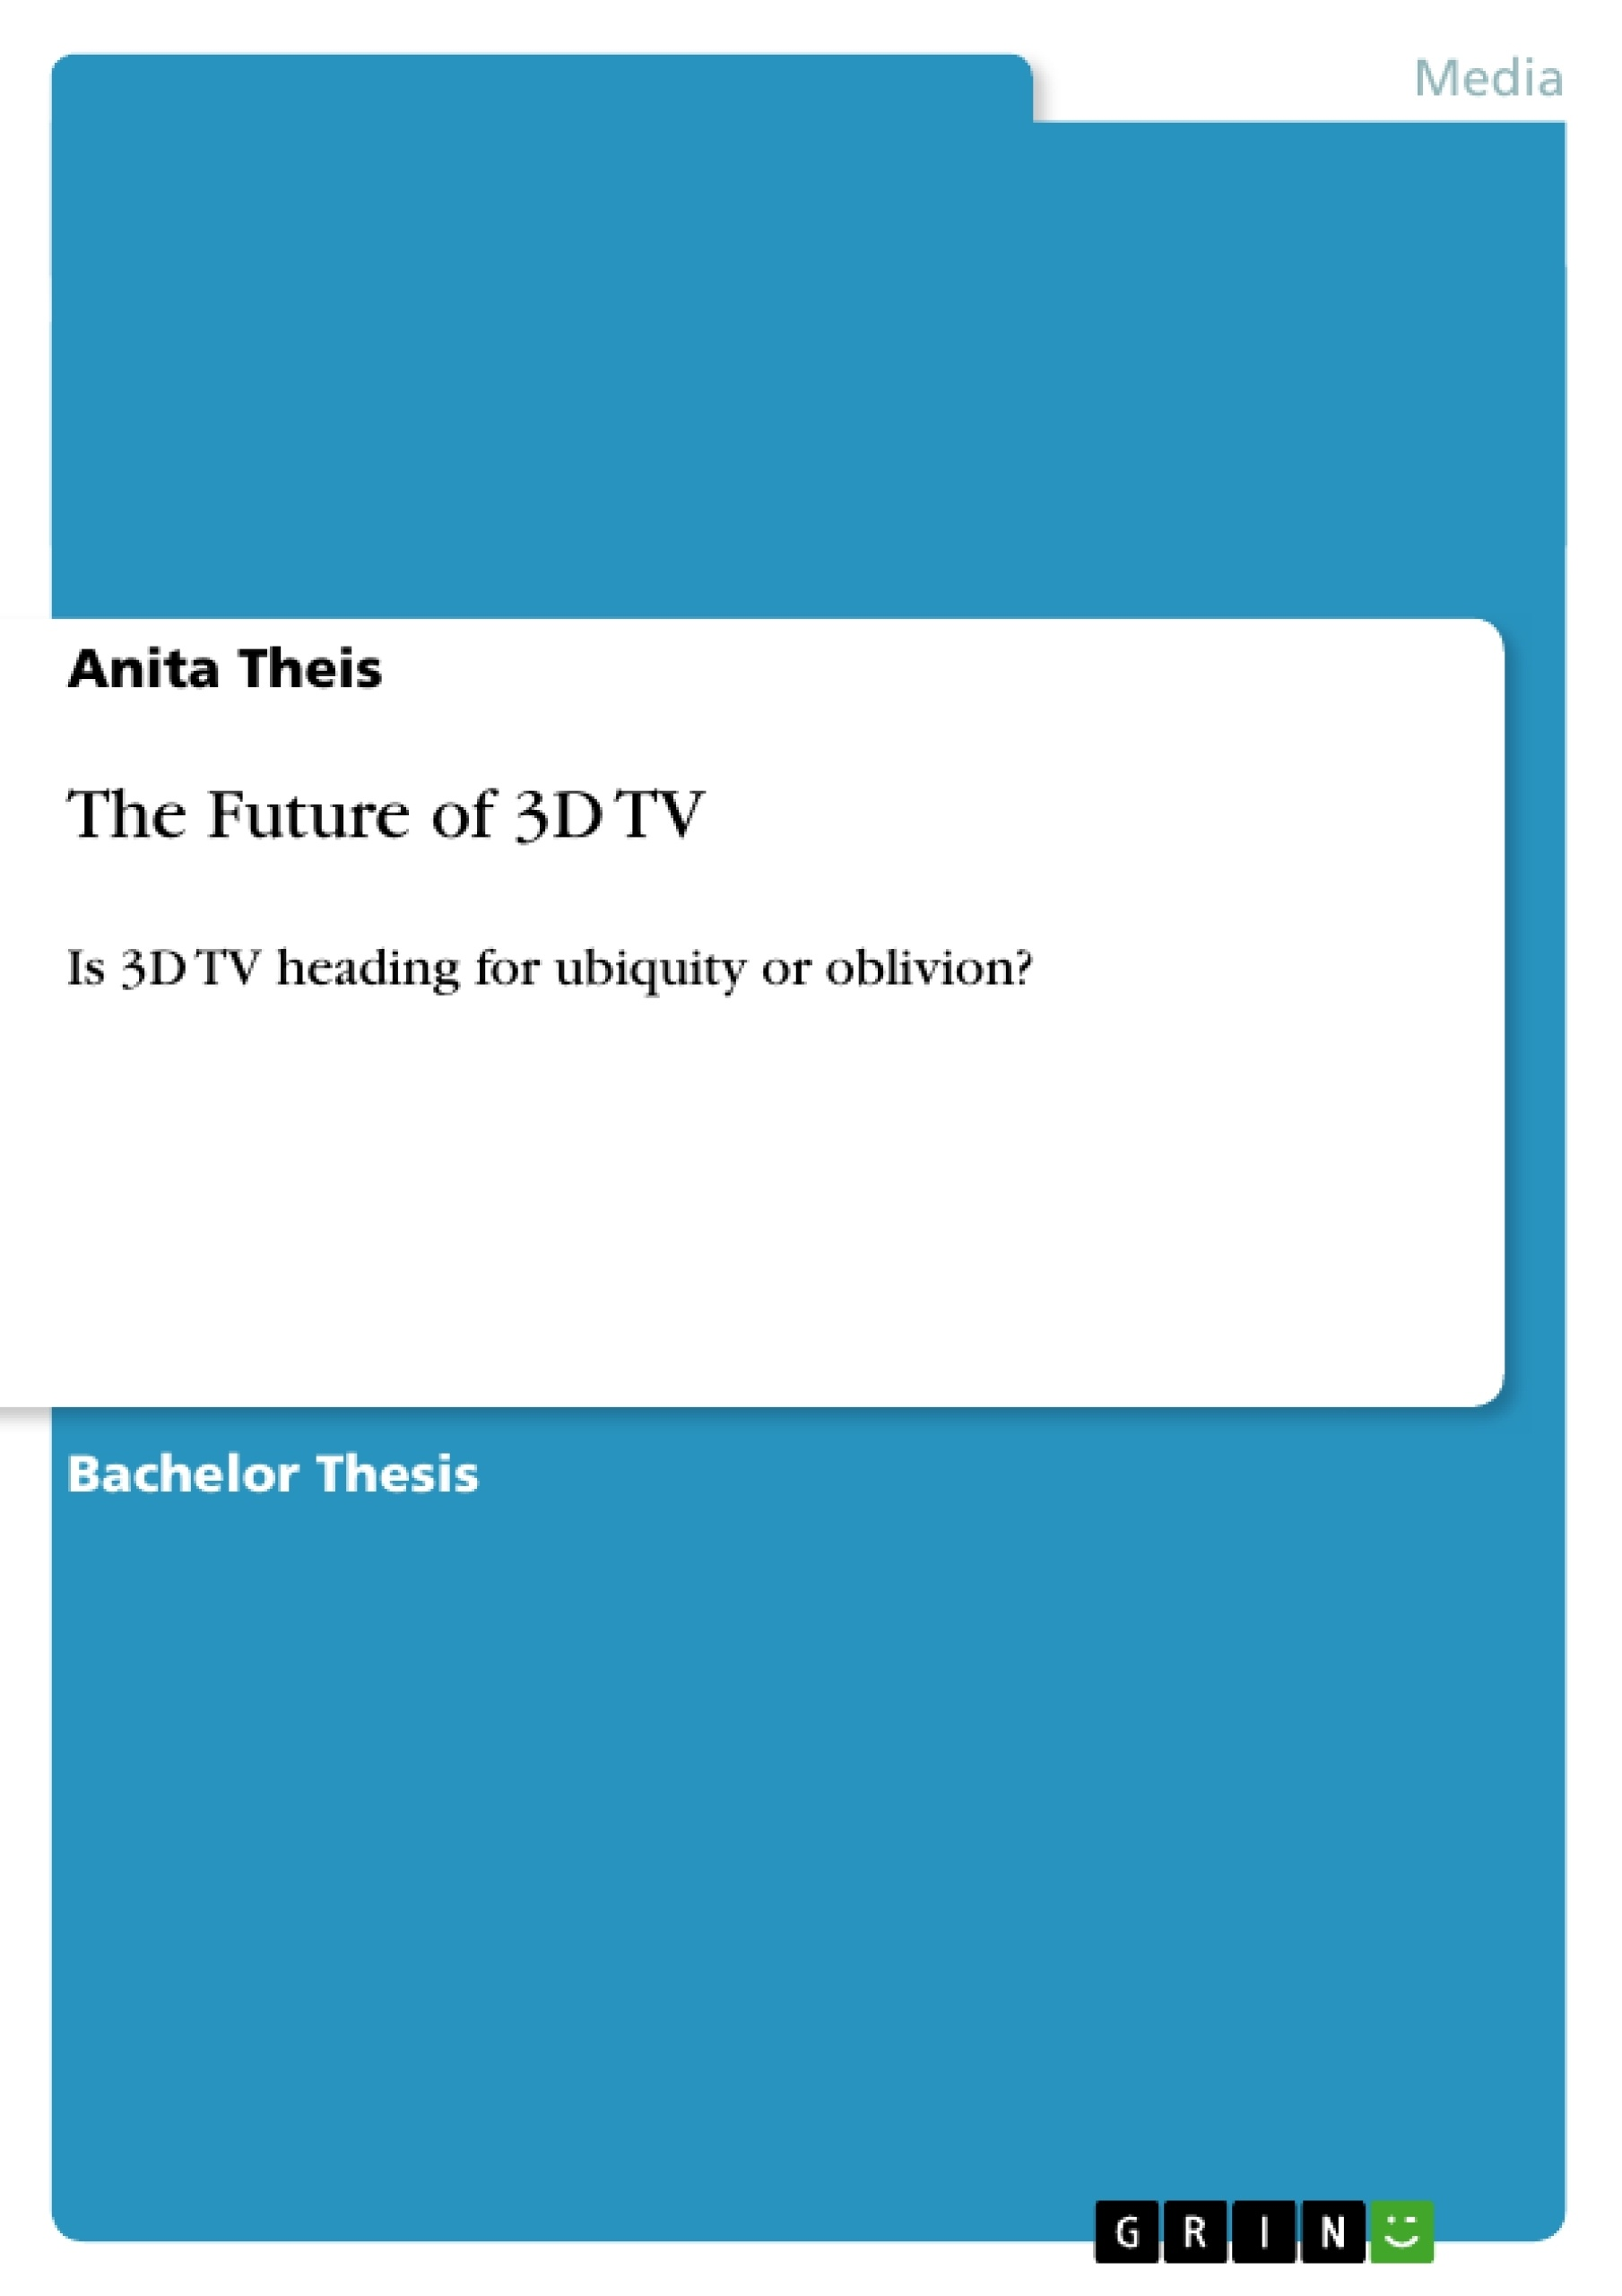 Title: The Future of 3D TV